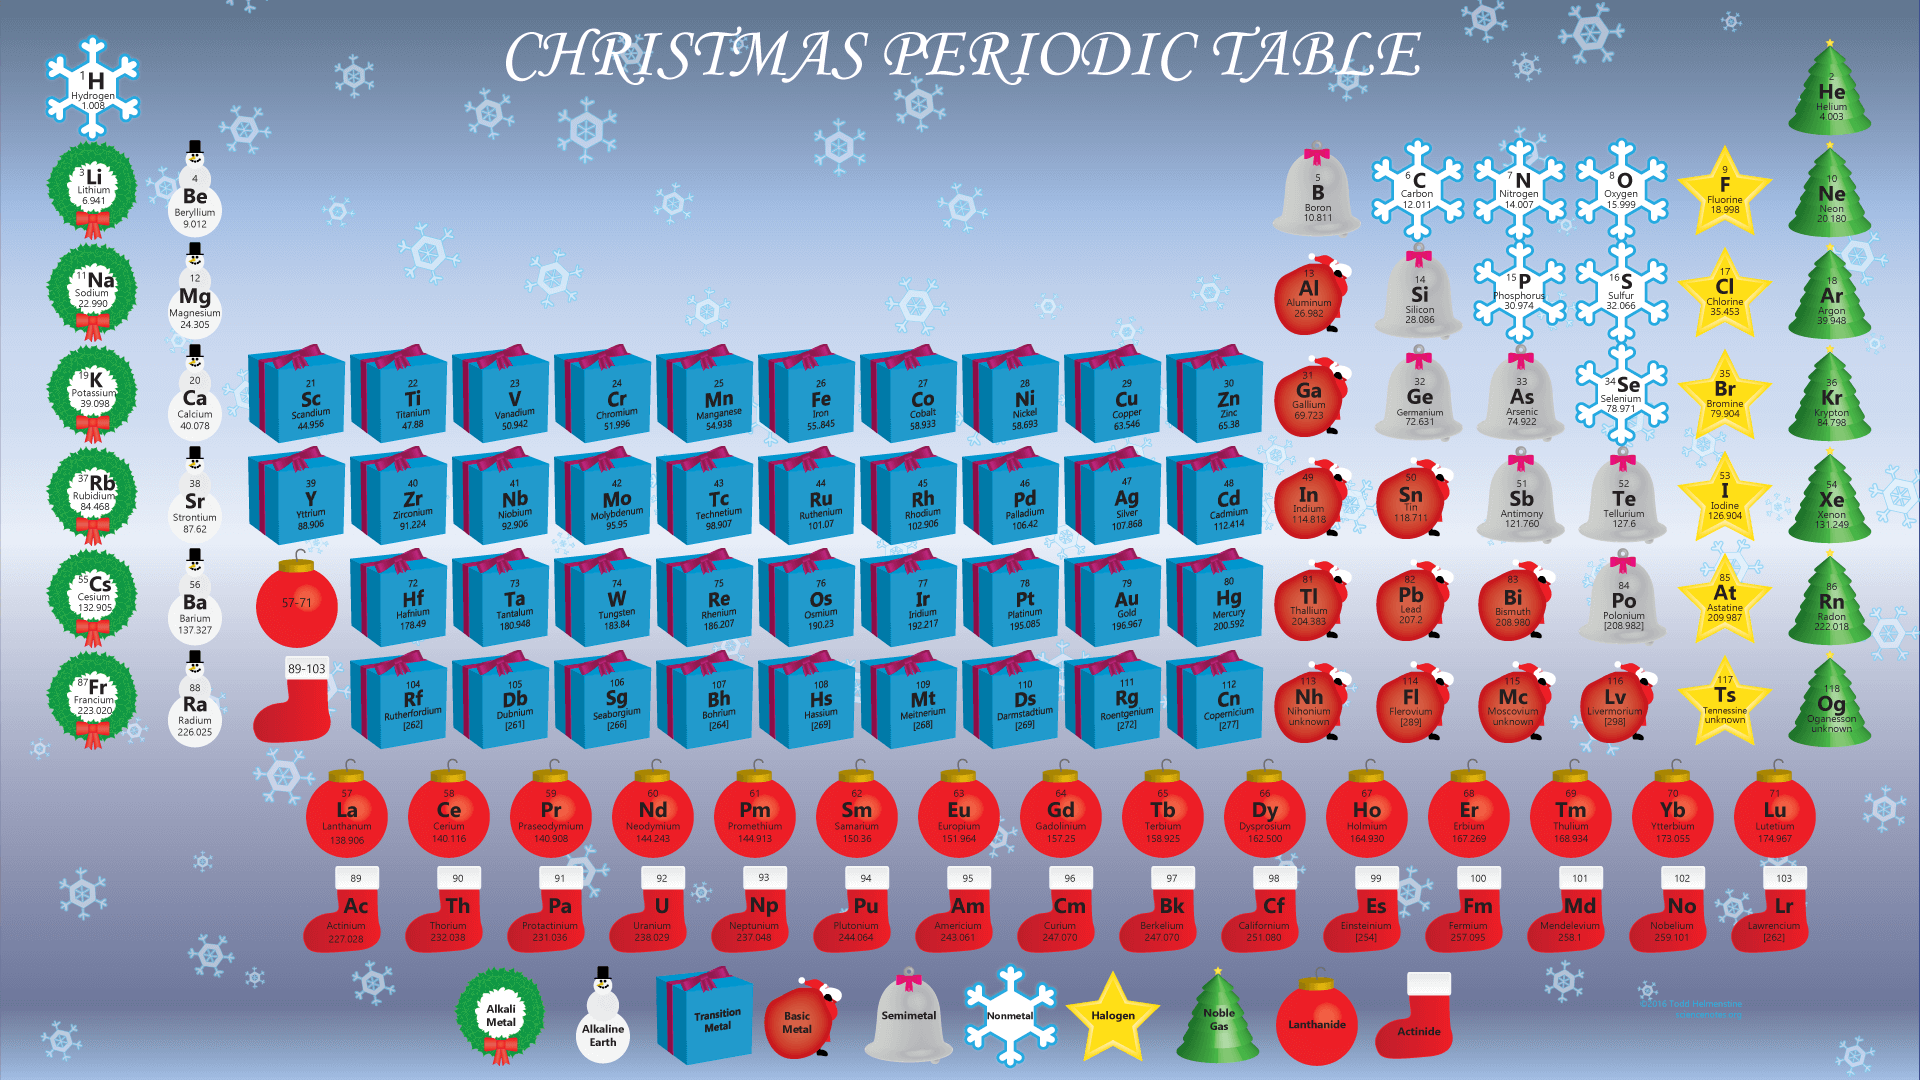 2016 Christmas Periodic Table Wallpaper